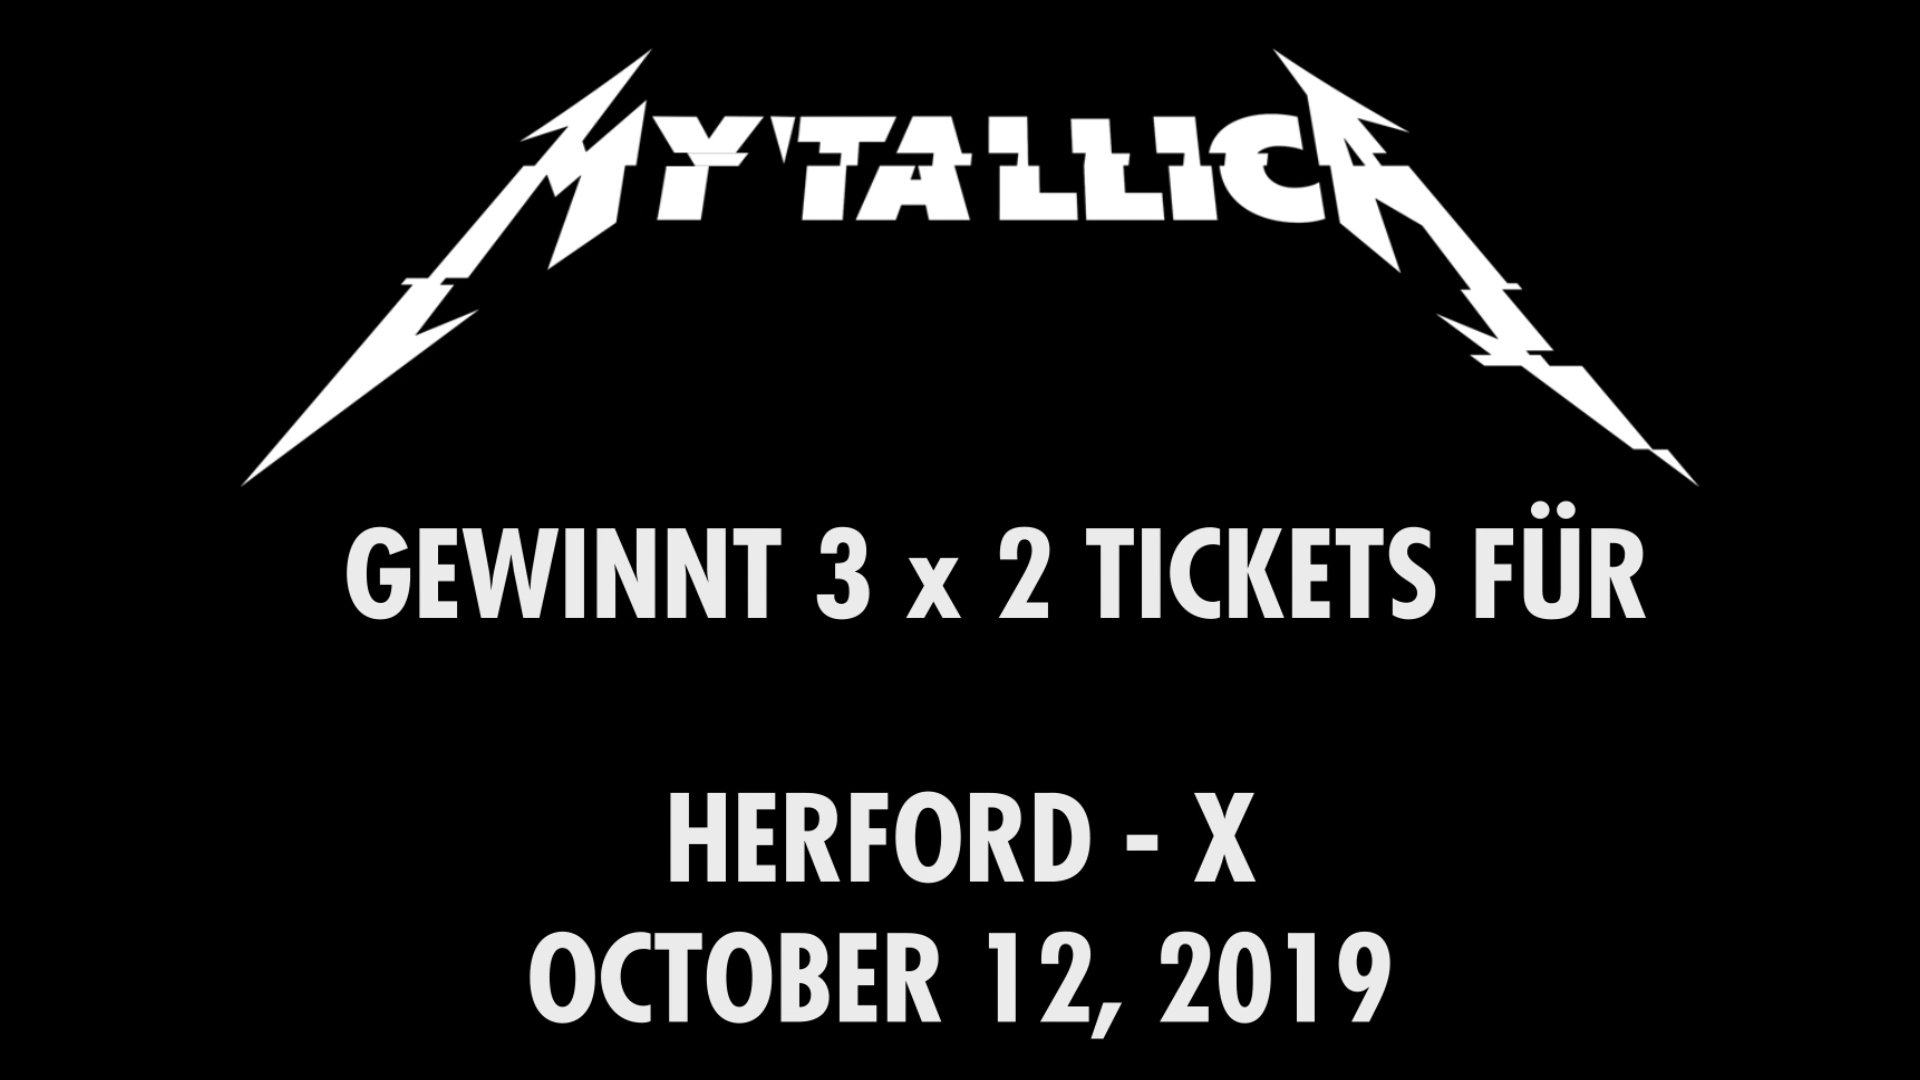 mytallica-herford-ticket-verlosung-2019